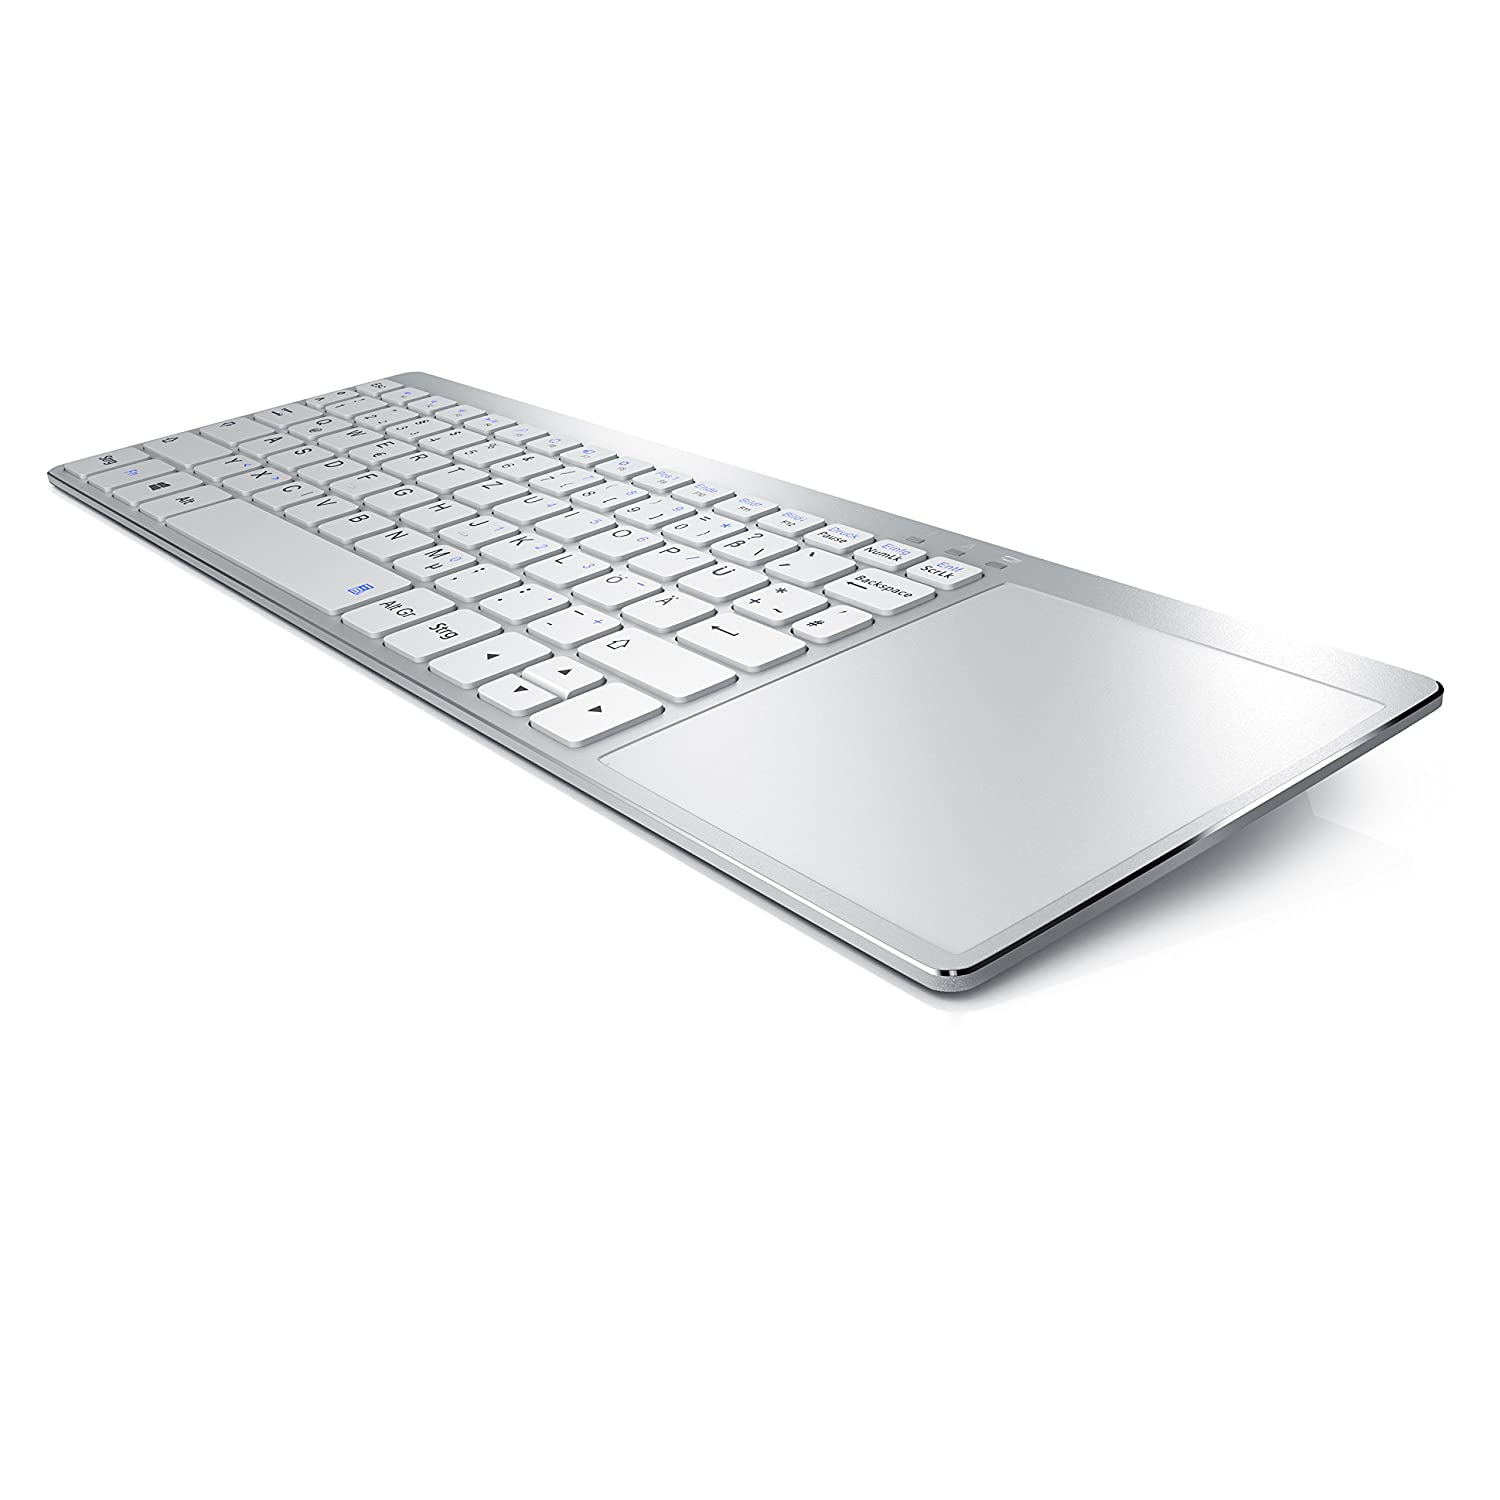 Aplic - Wireless Slim Tastatur mit Touchpad im Apple Design | Multimedia Keyboard im Slim Design | Multitouch-Gestensteuerung | QWERTZ | 80 Tasten | weiß CSL-Computer 230303263